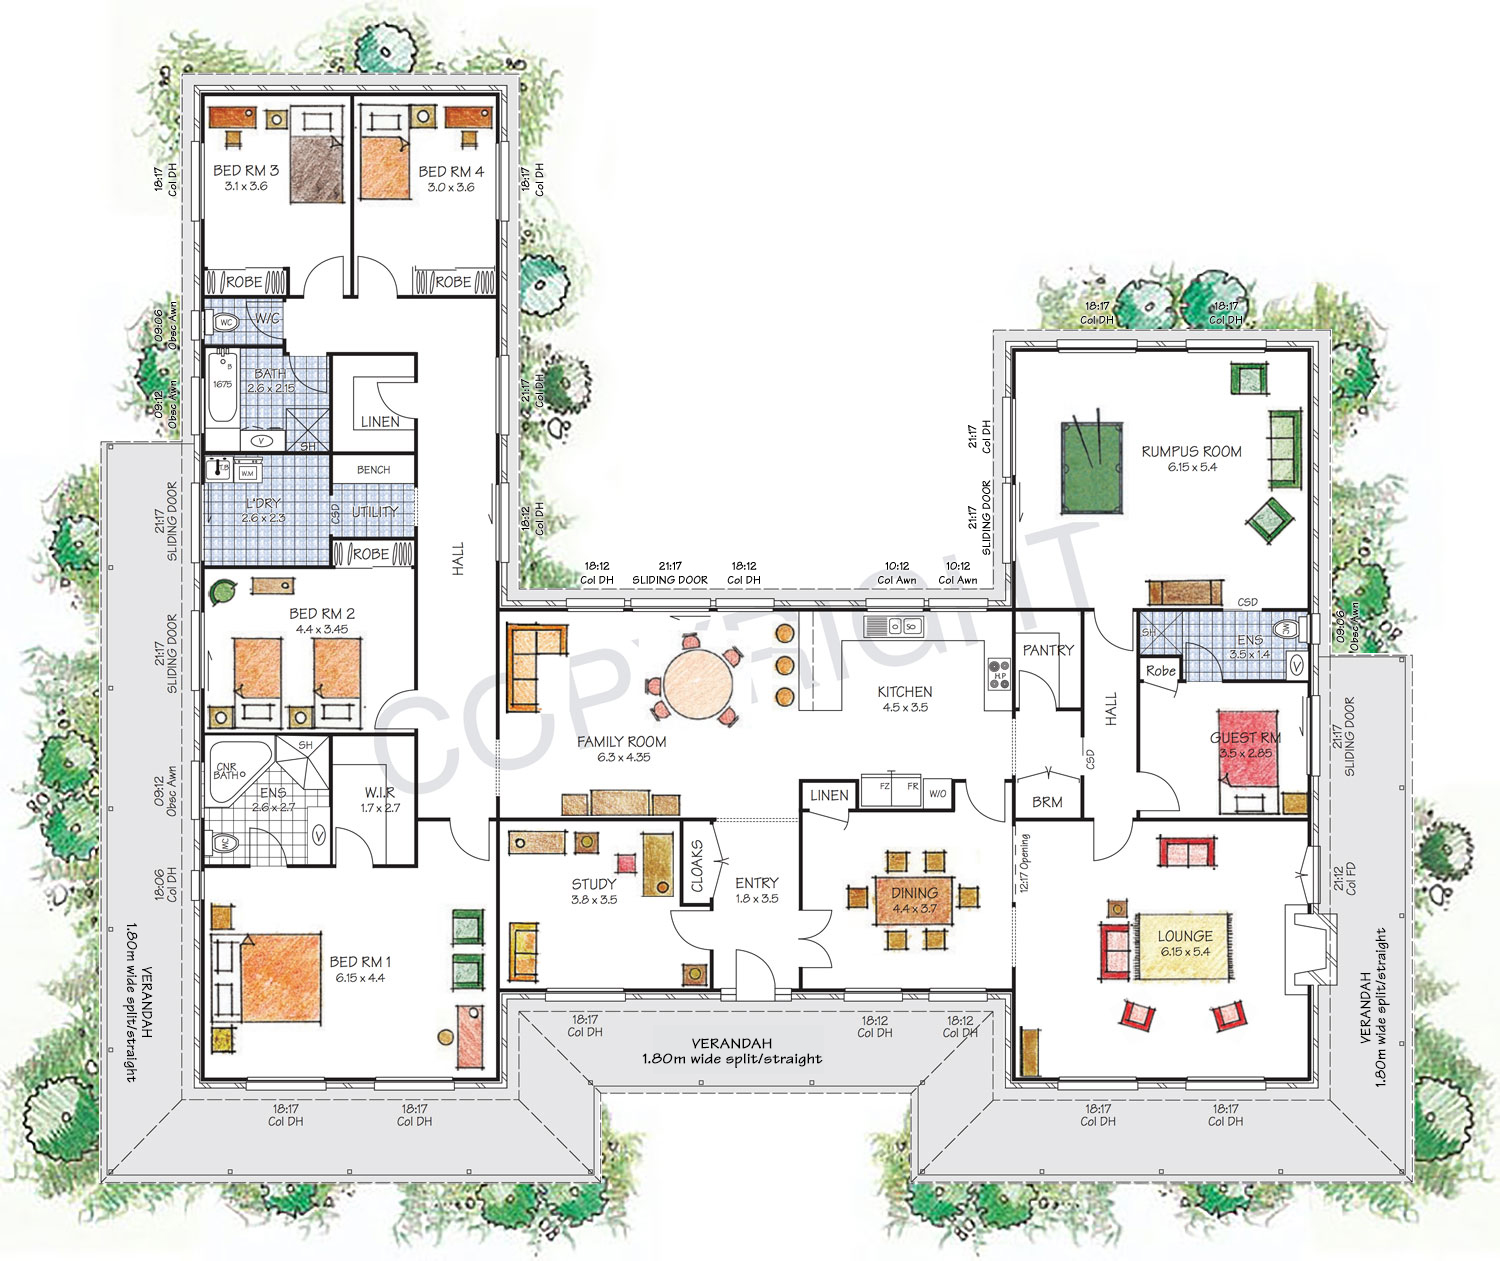 The Castlereagh floor plan